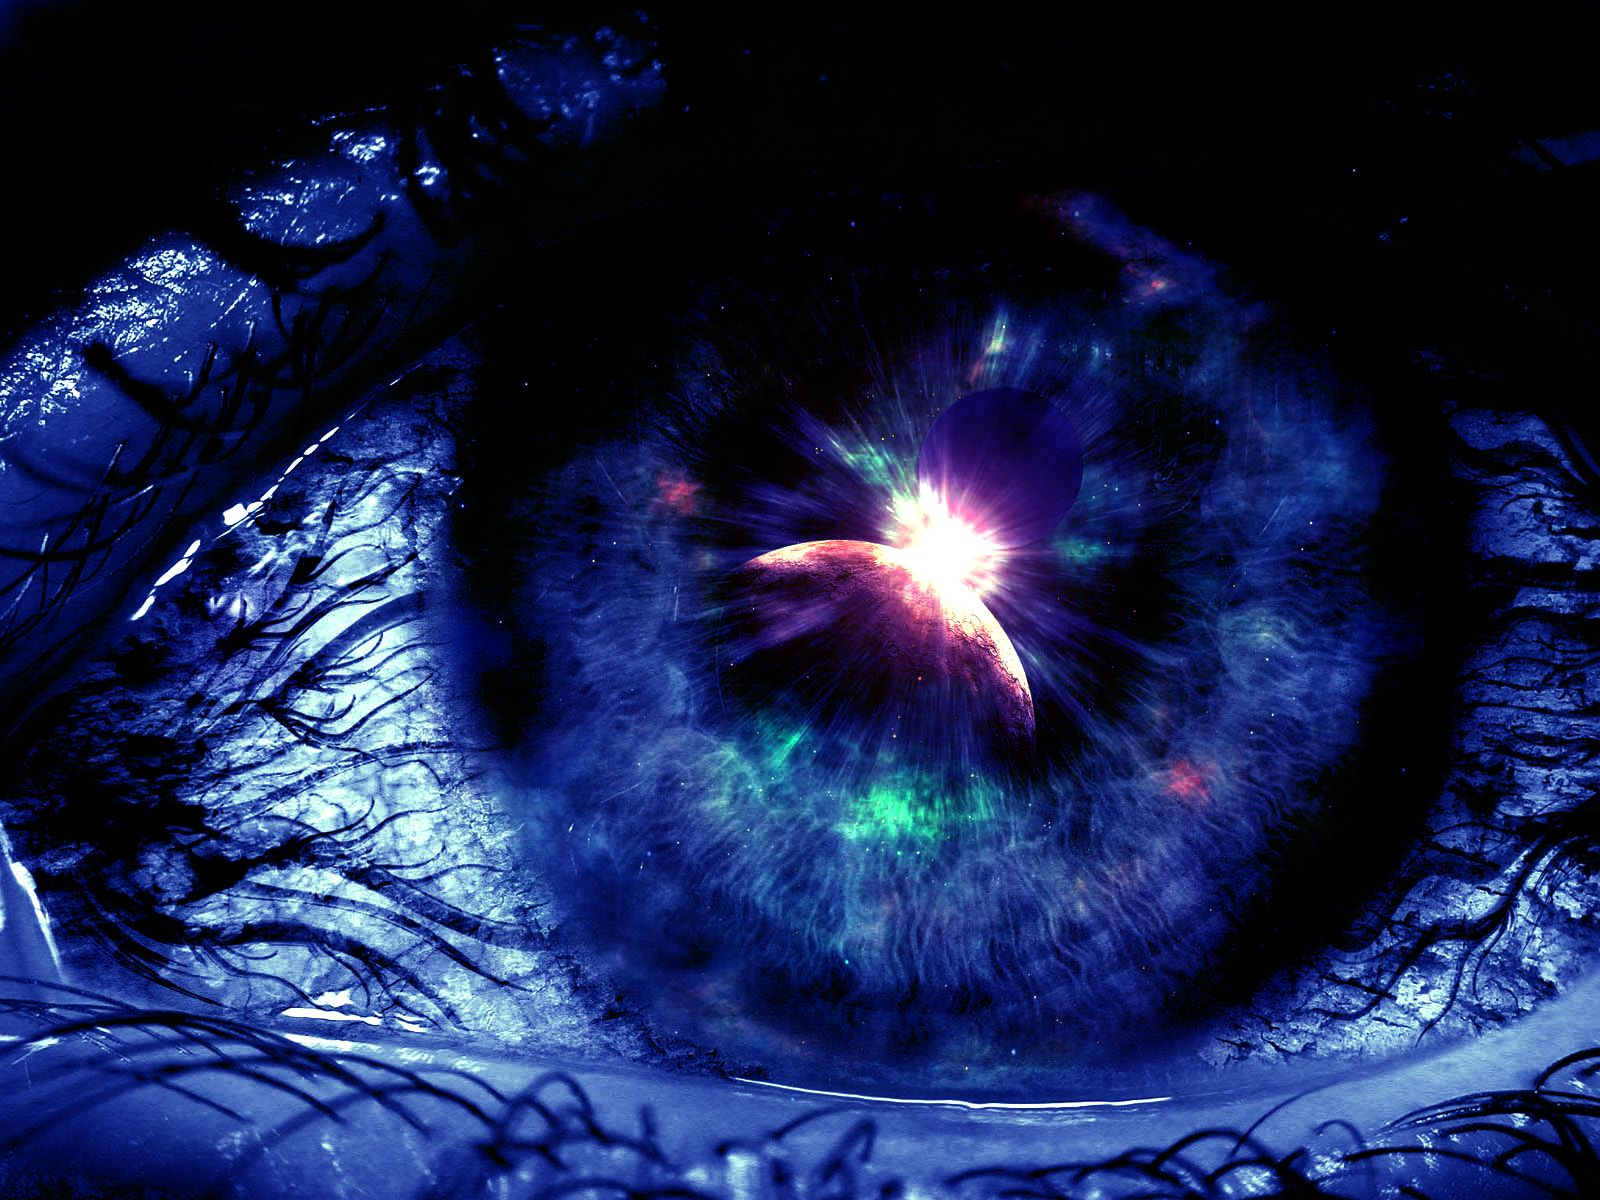 Artistic Eye Wallpaper Eyes Wallpaper Trippy Pictures Artistic